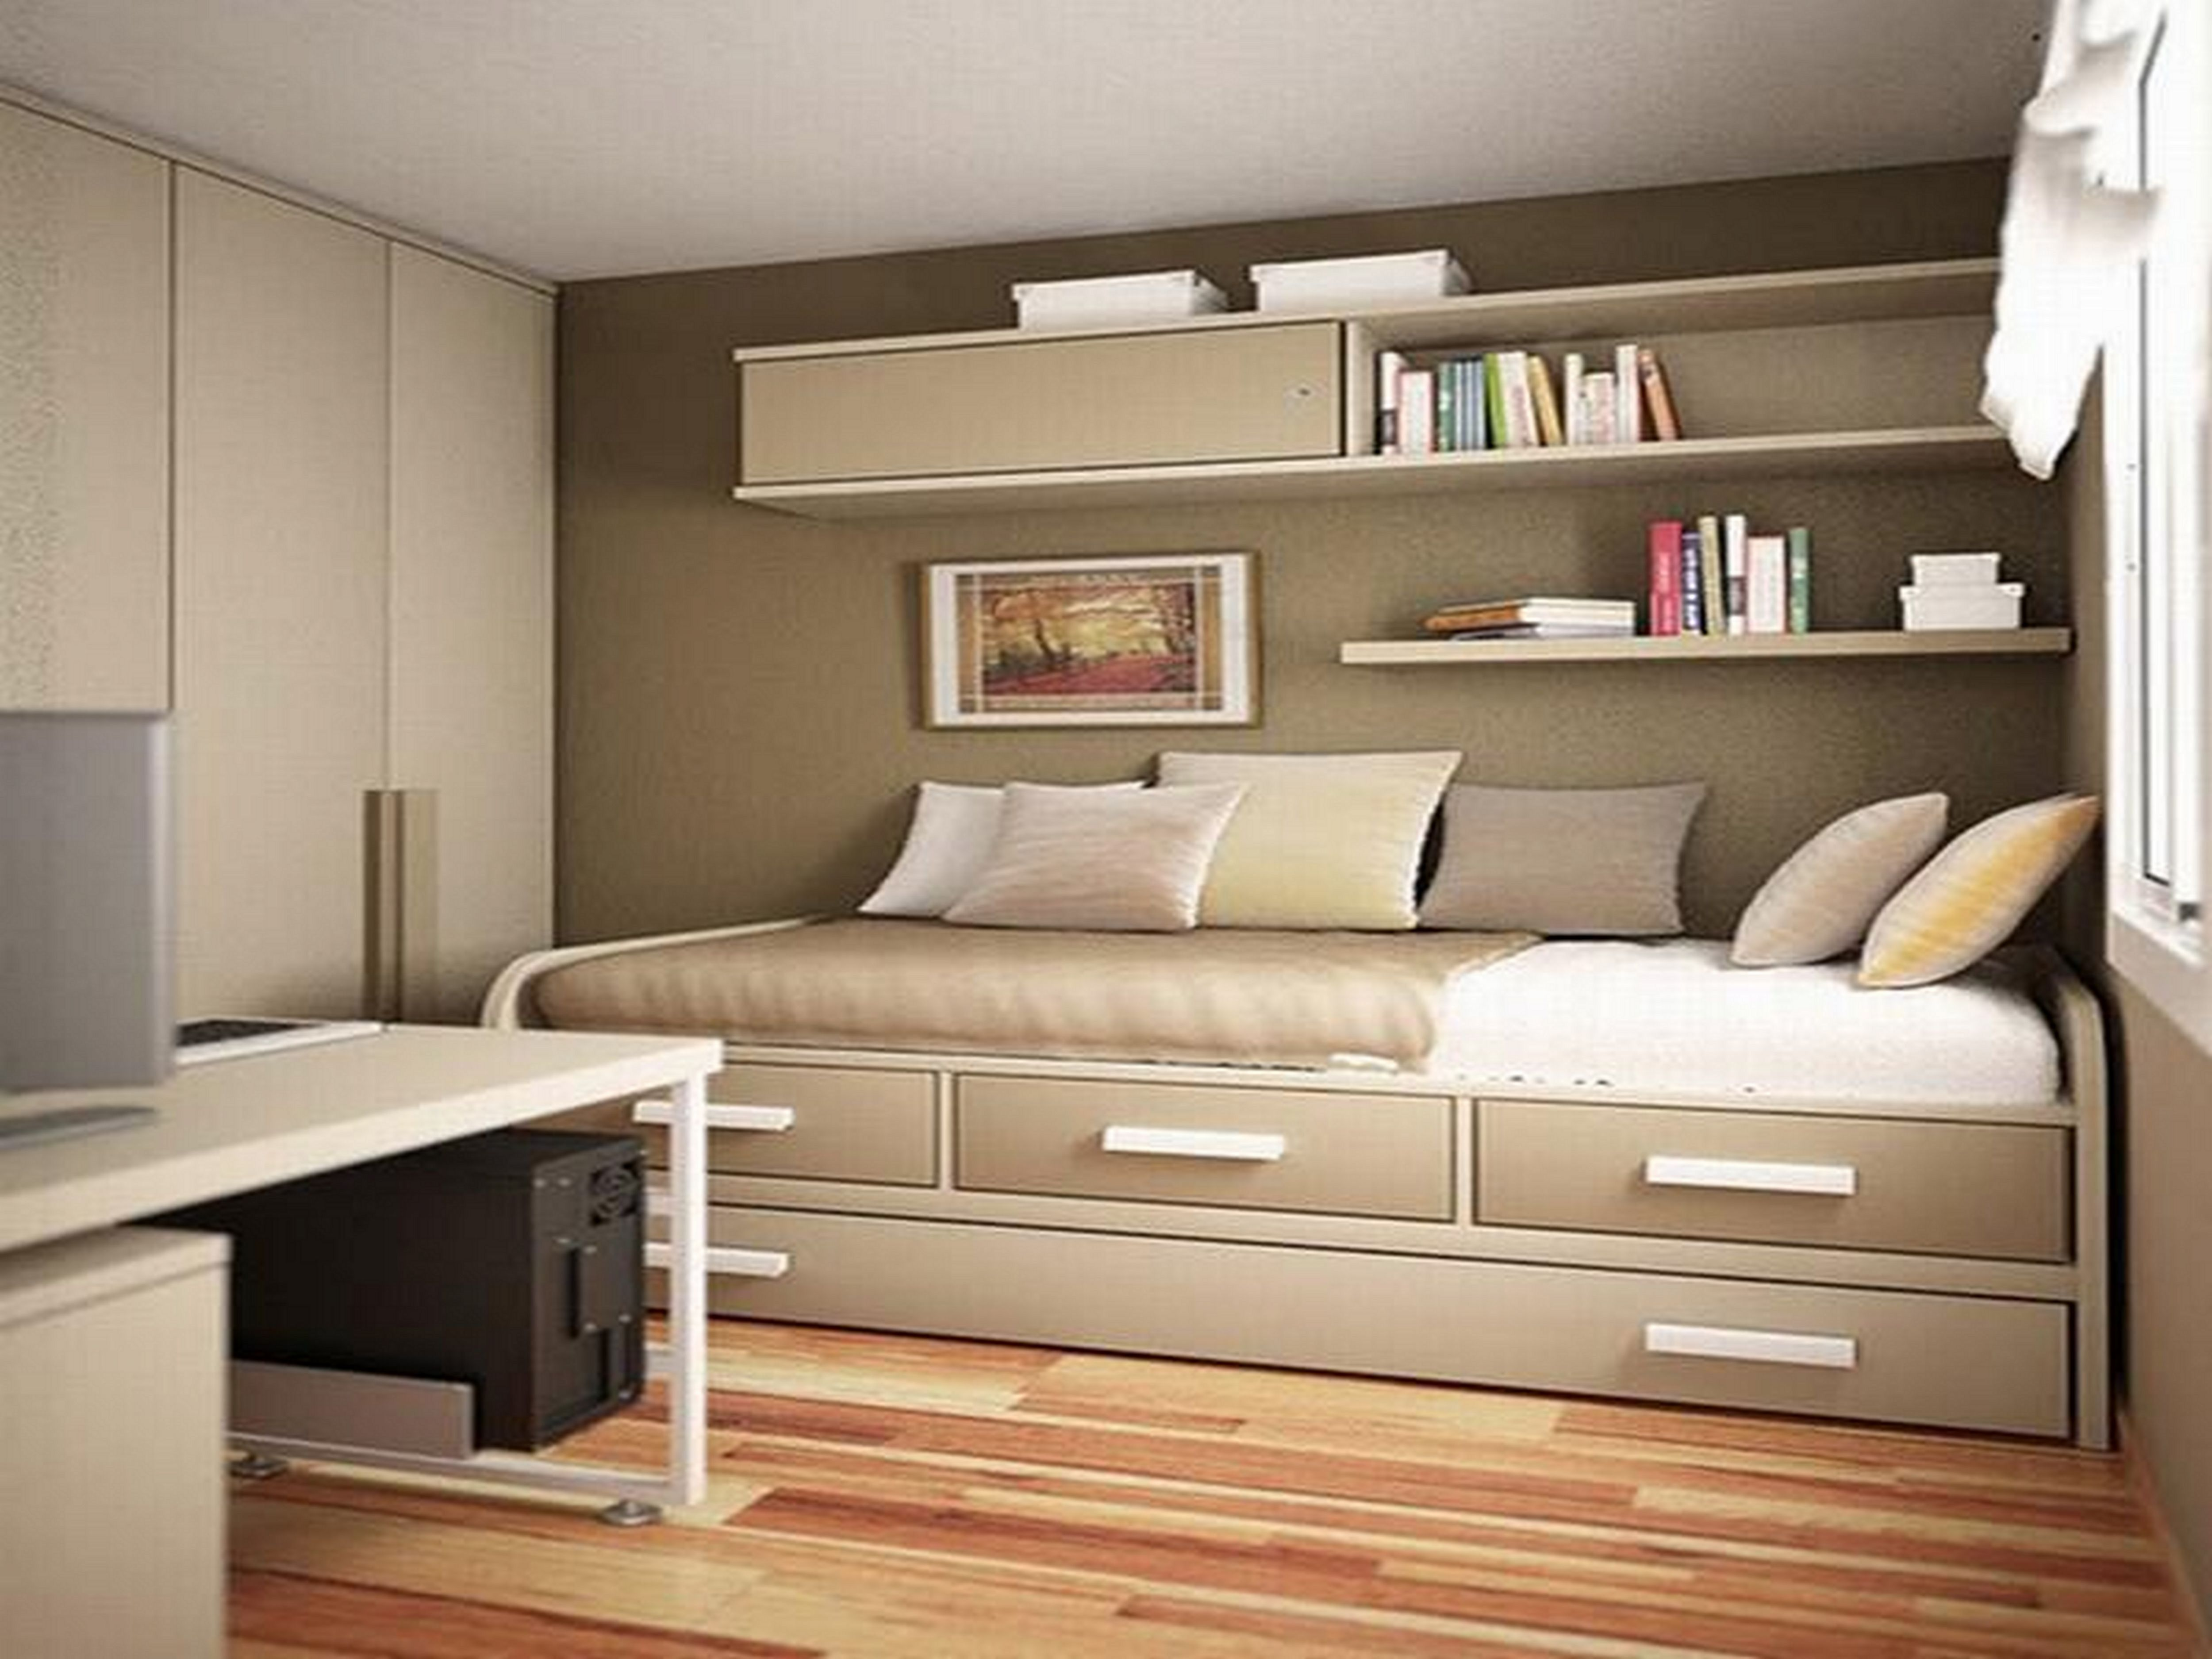 Badregal design  best small bedroom ideas on a budget